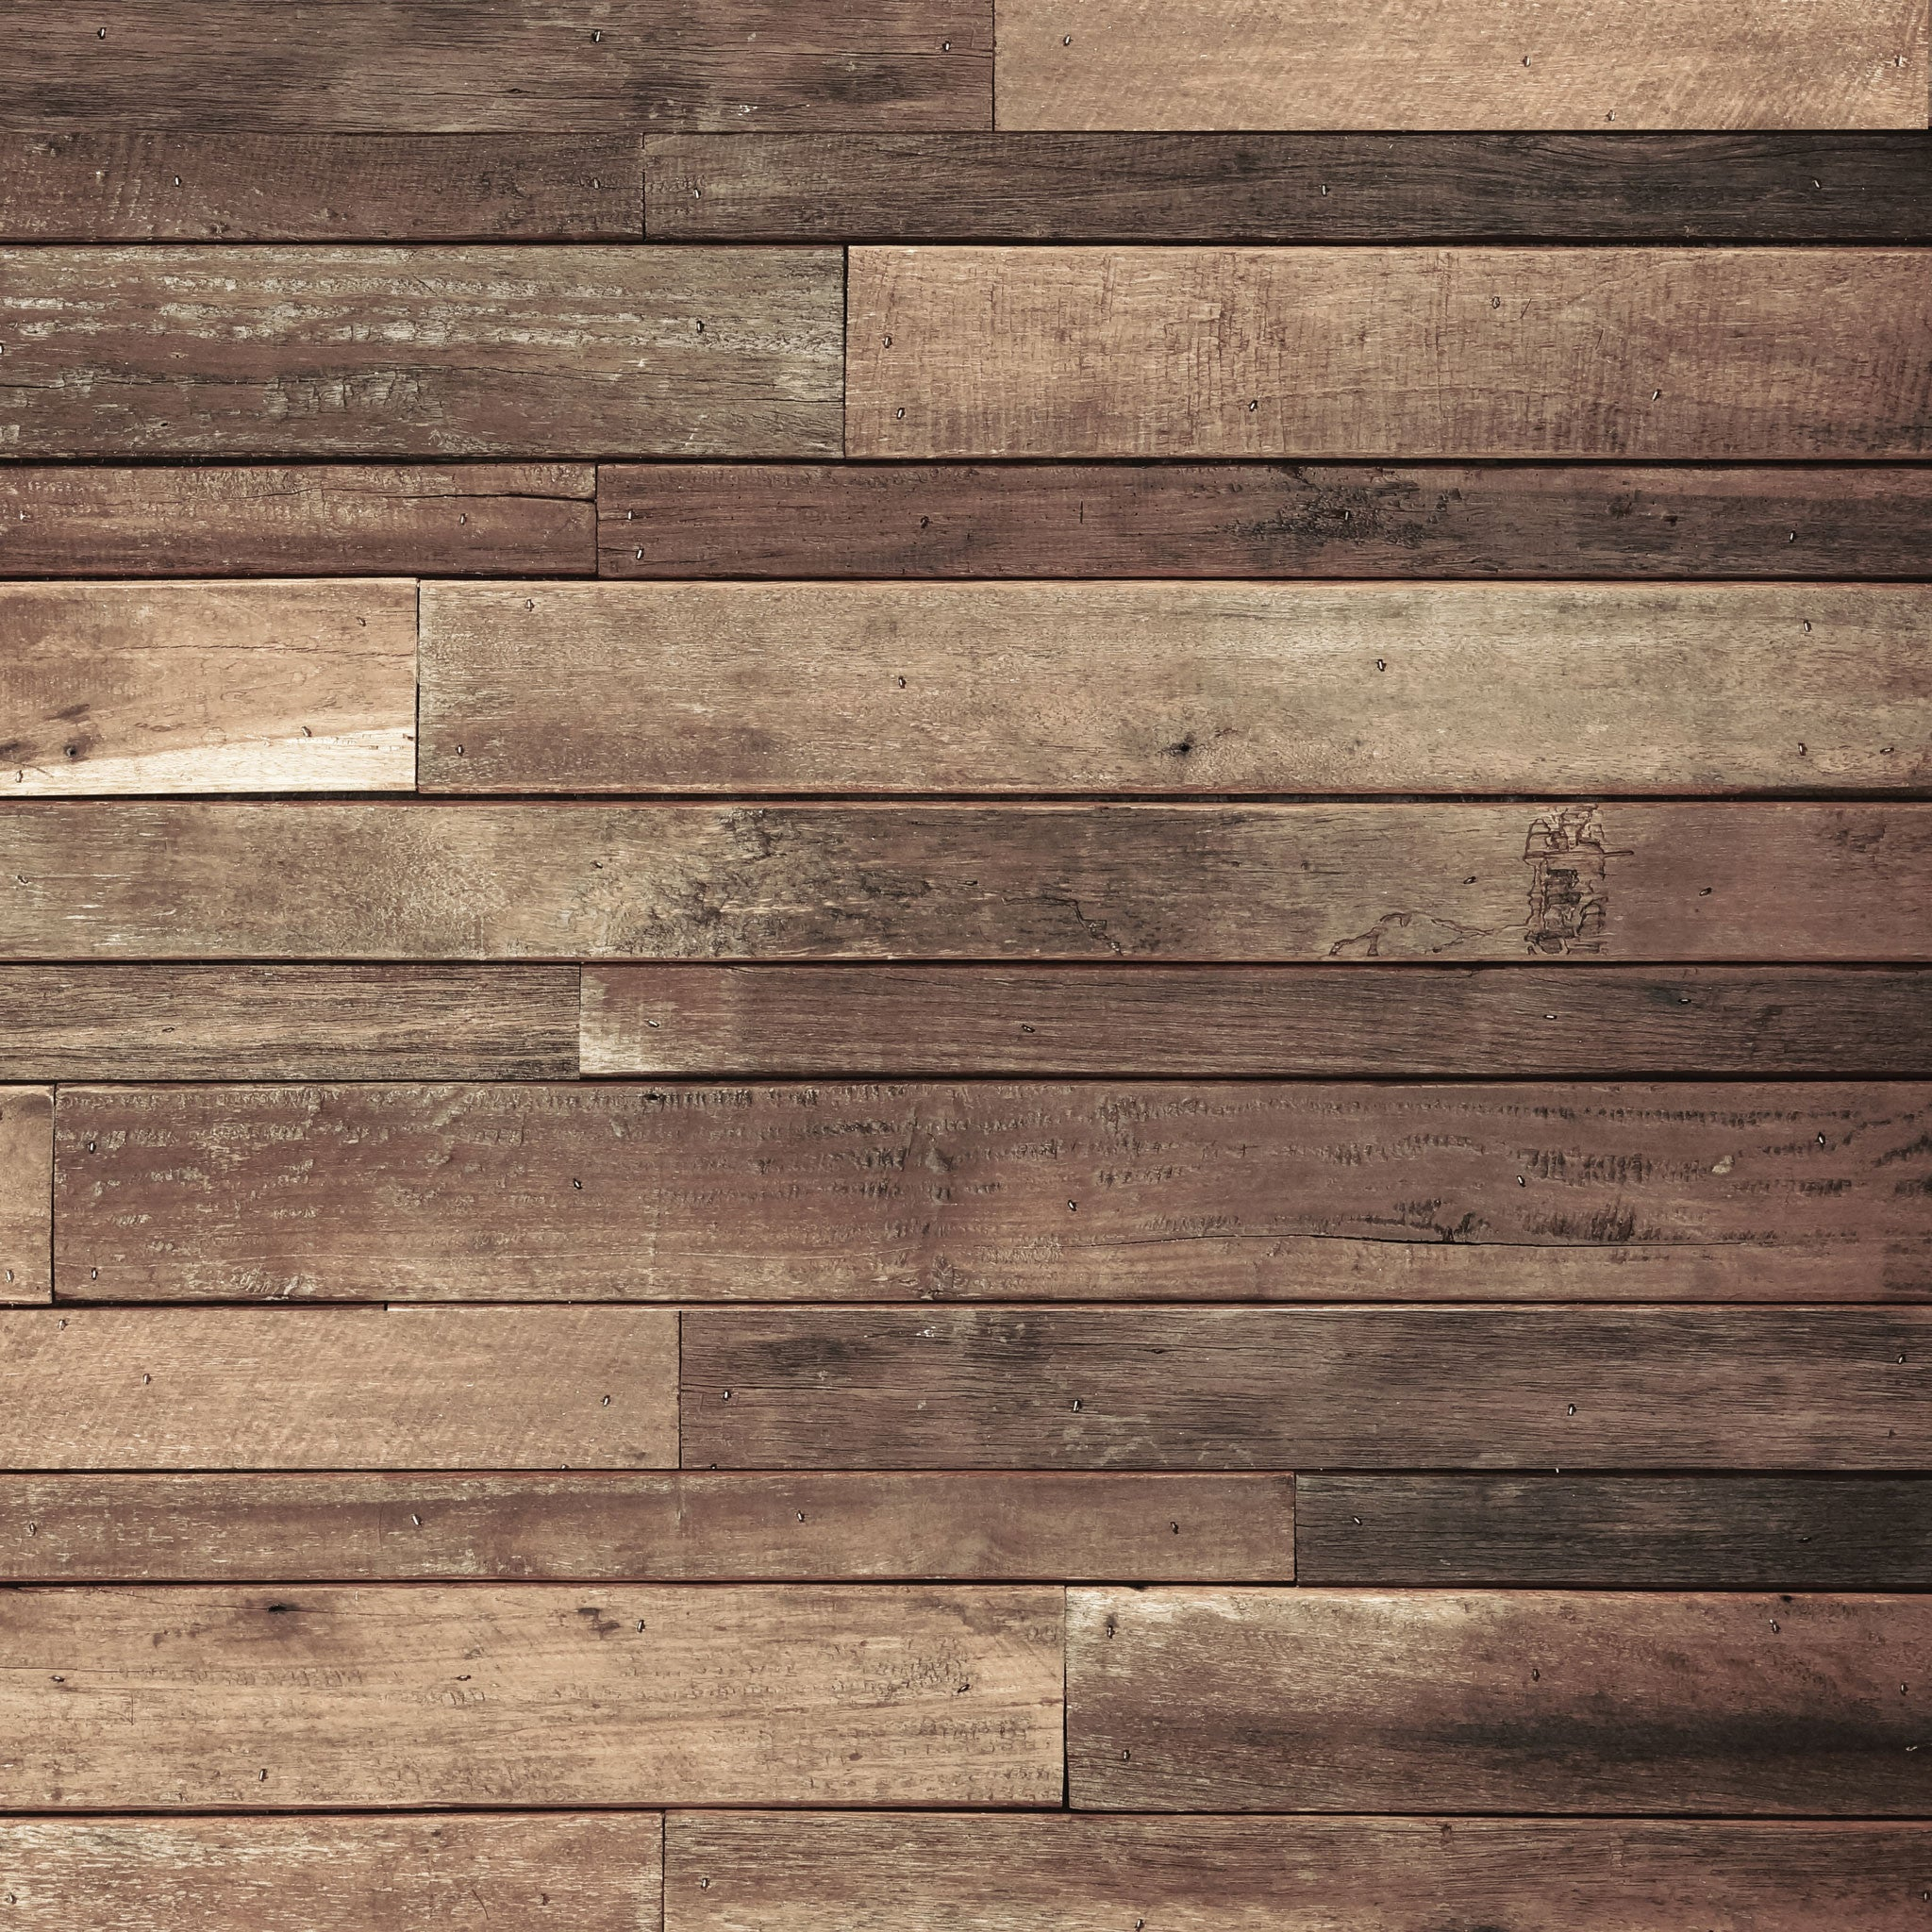 Reclaimed Wood Photo Background